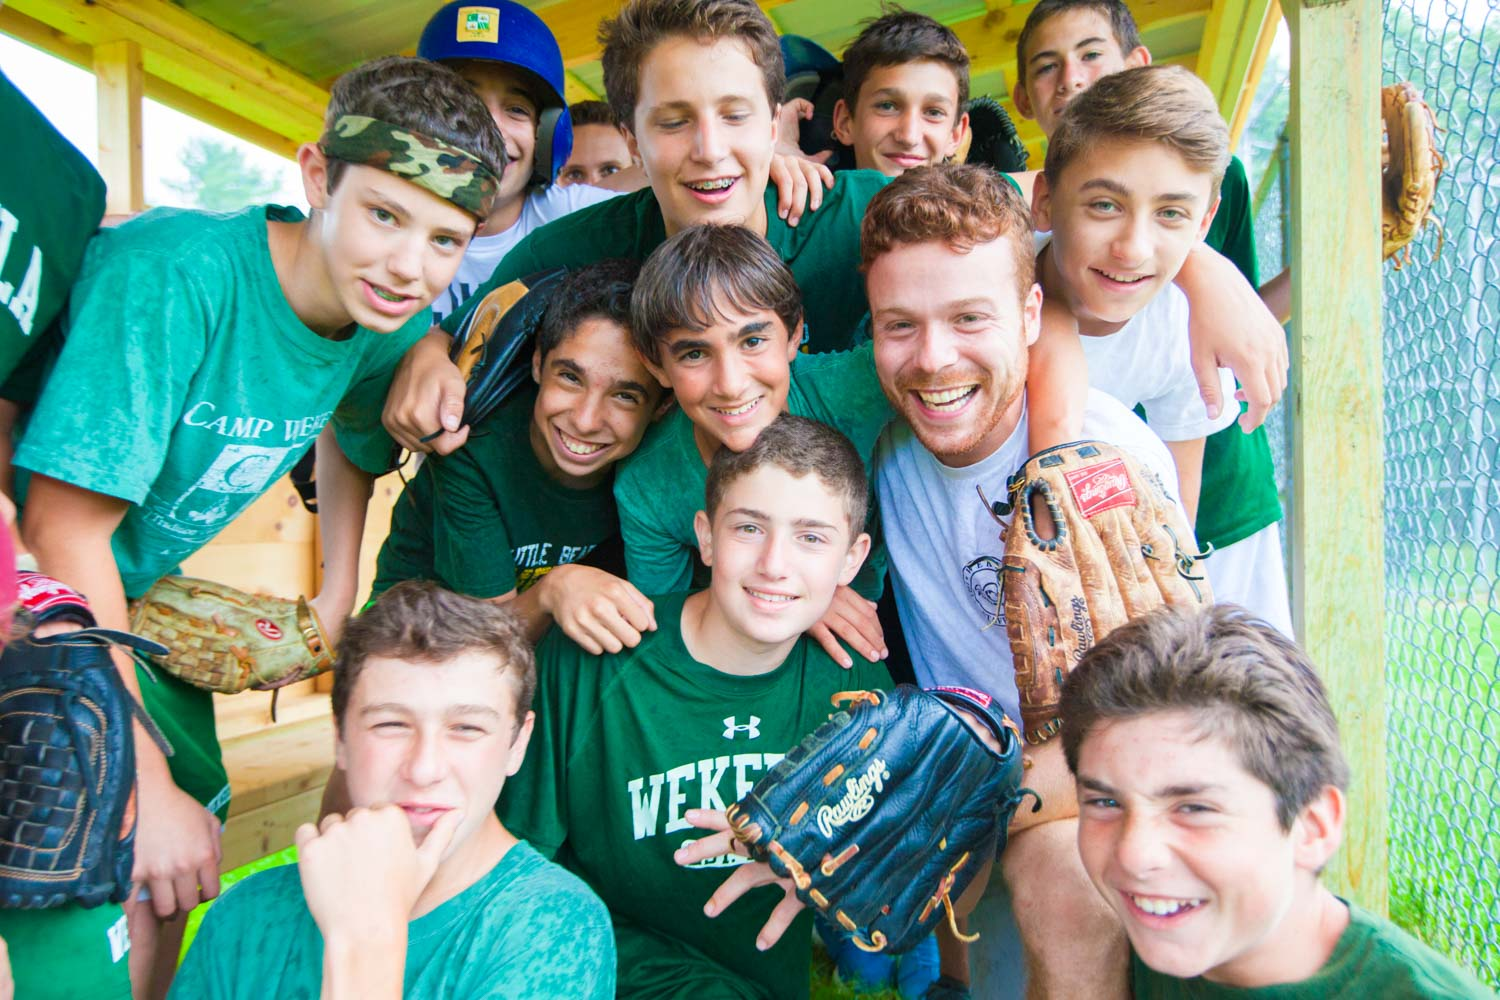 A Baseball Coach & Time Smile at Summer Camp in America